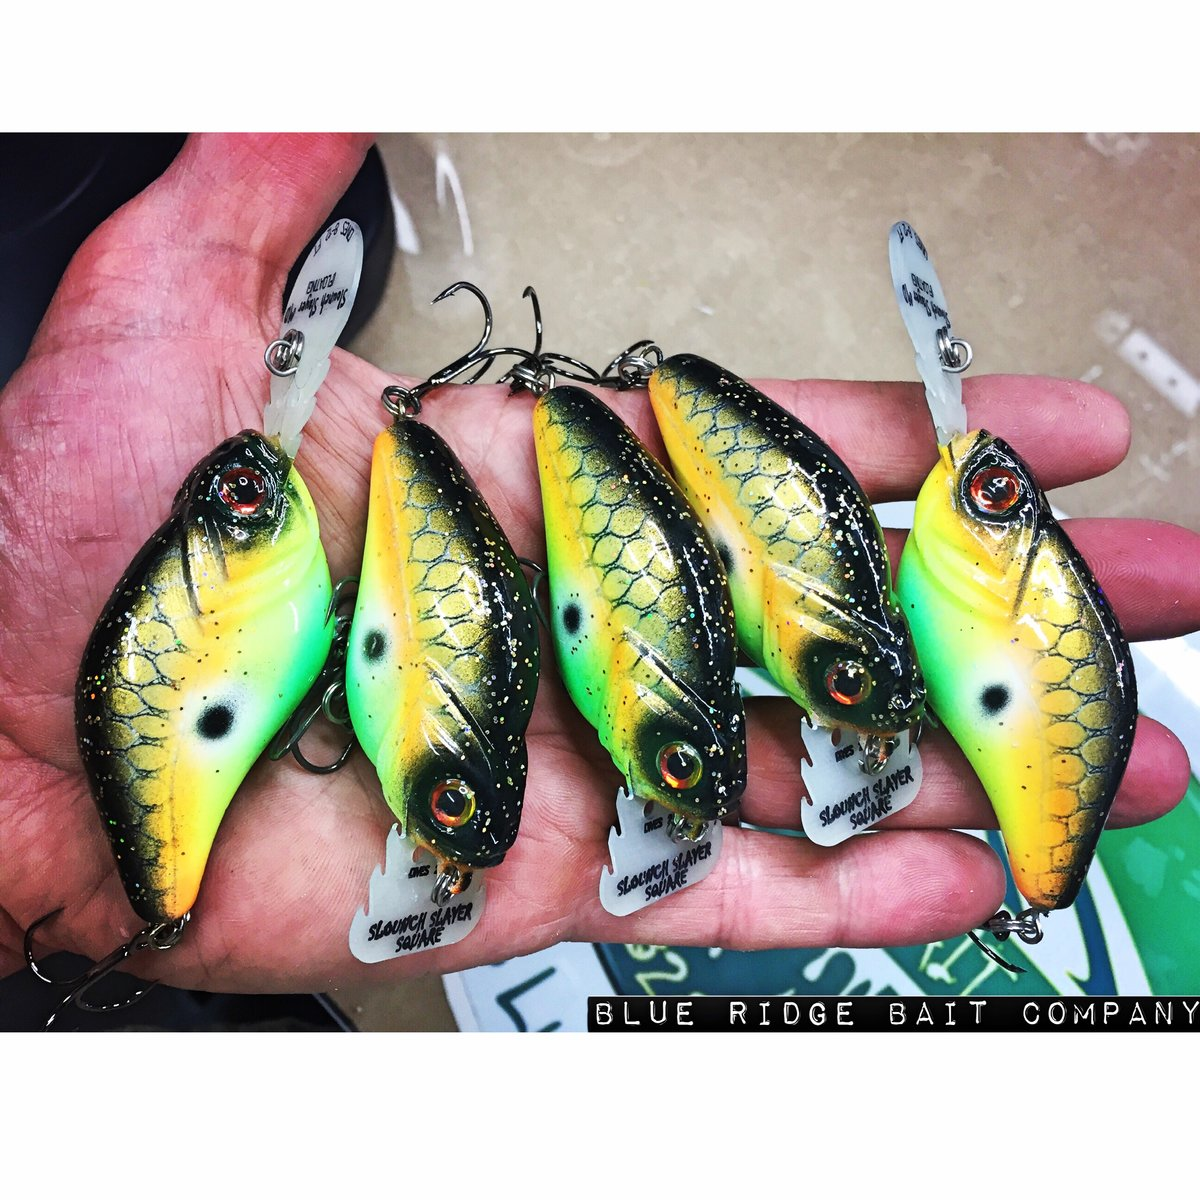 tricked out crankbaits.jpeg